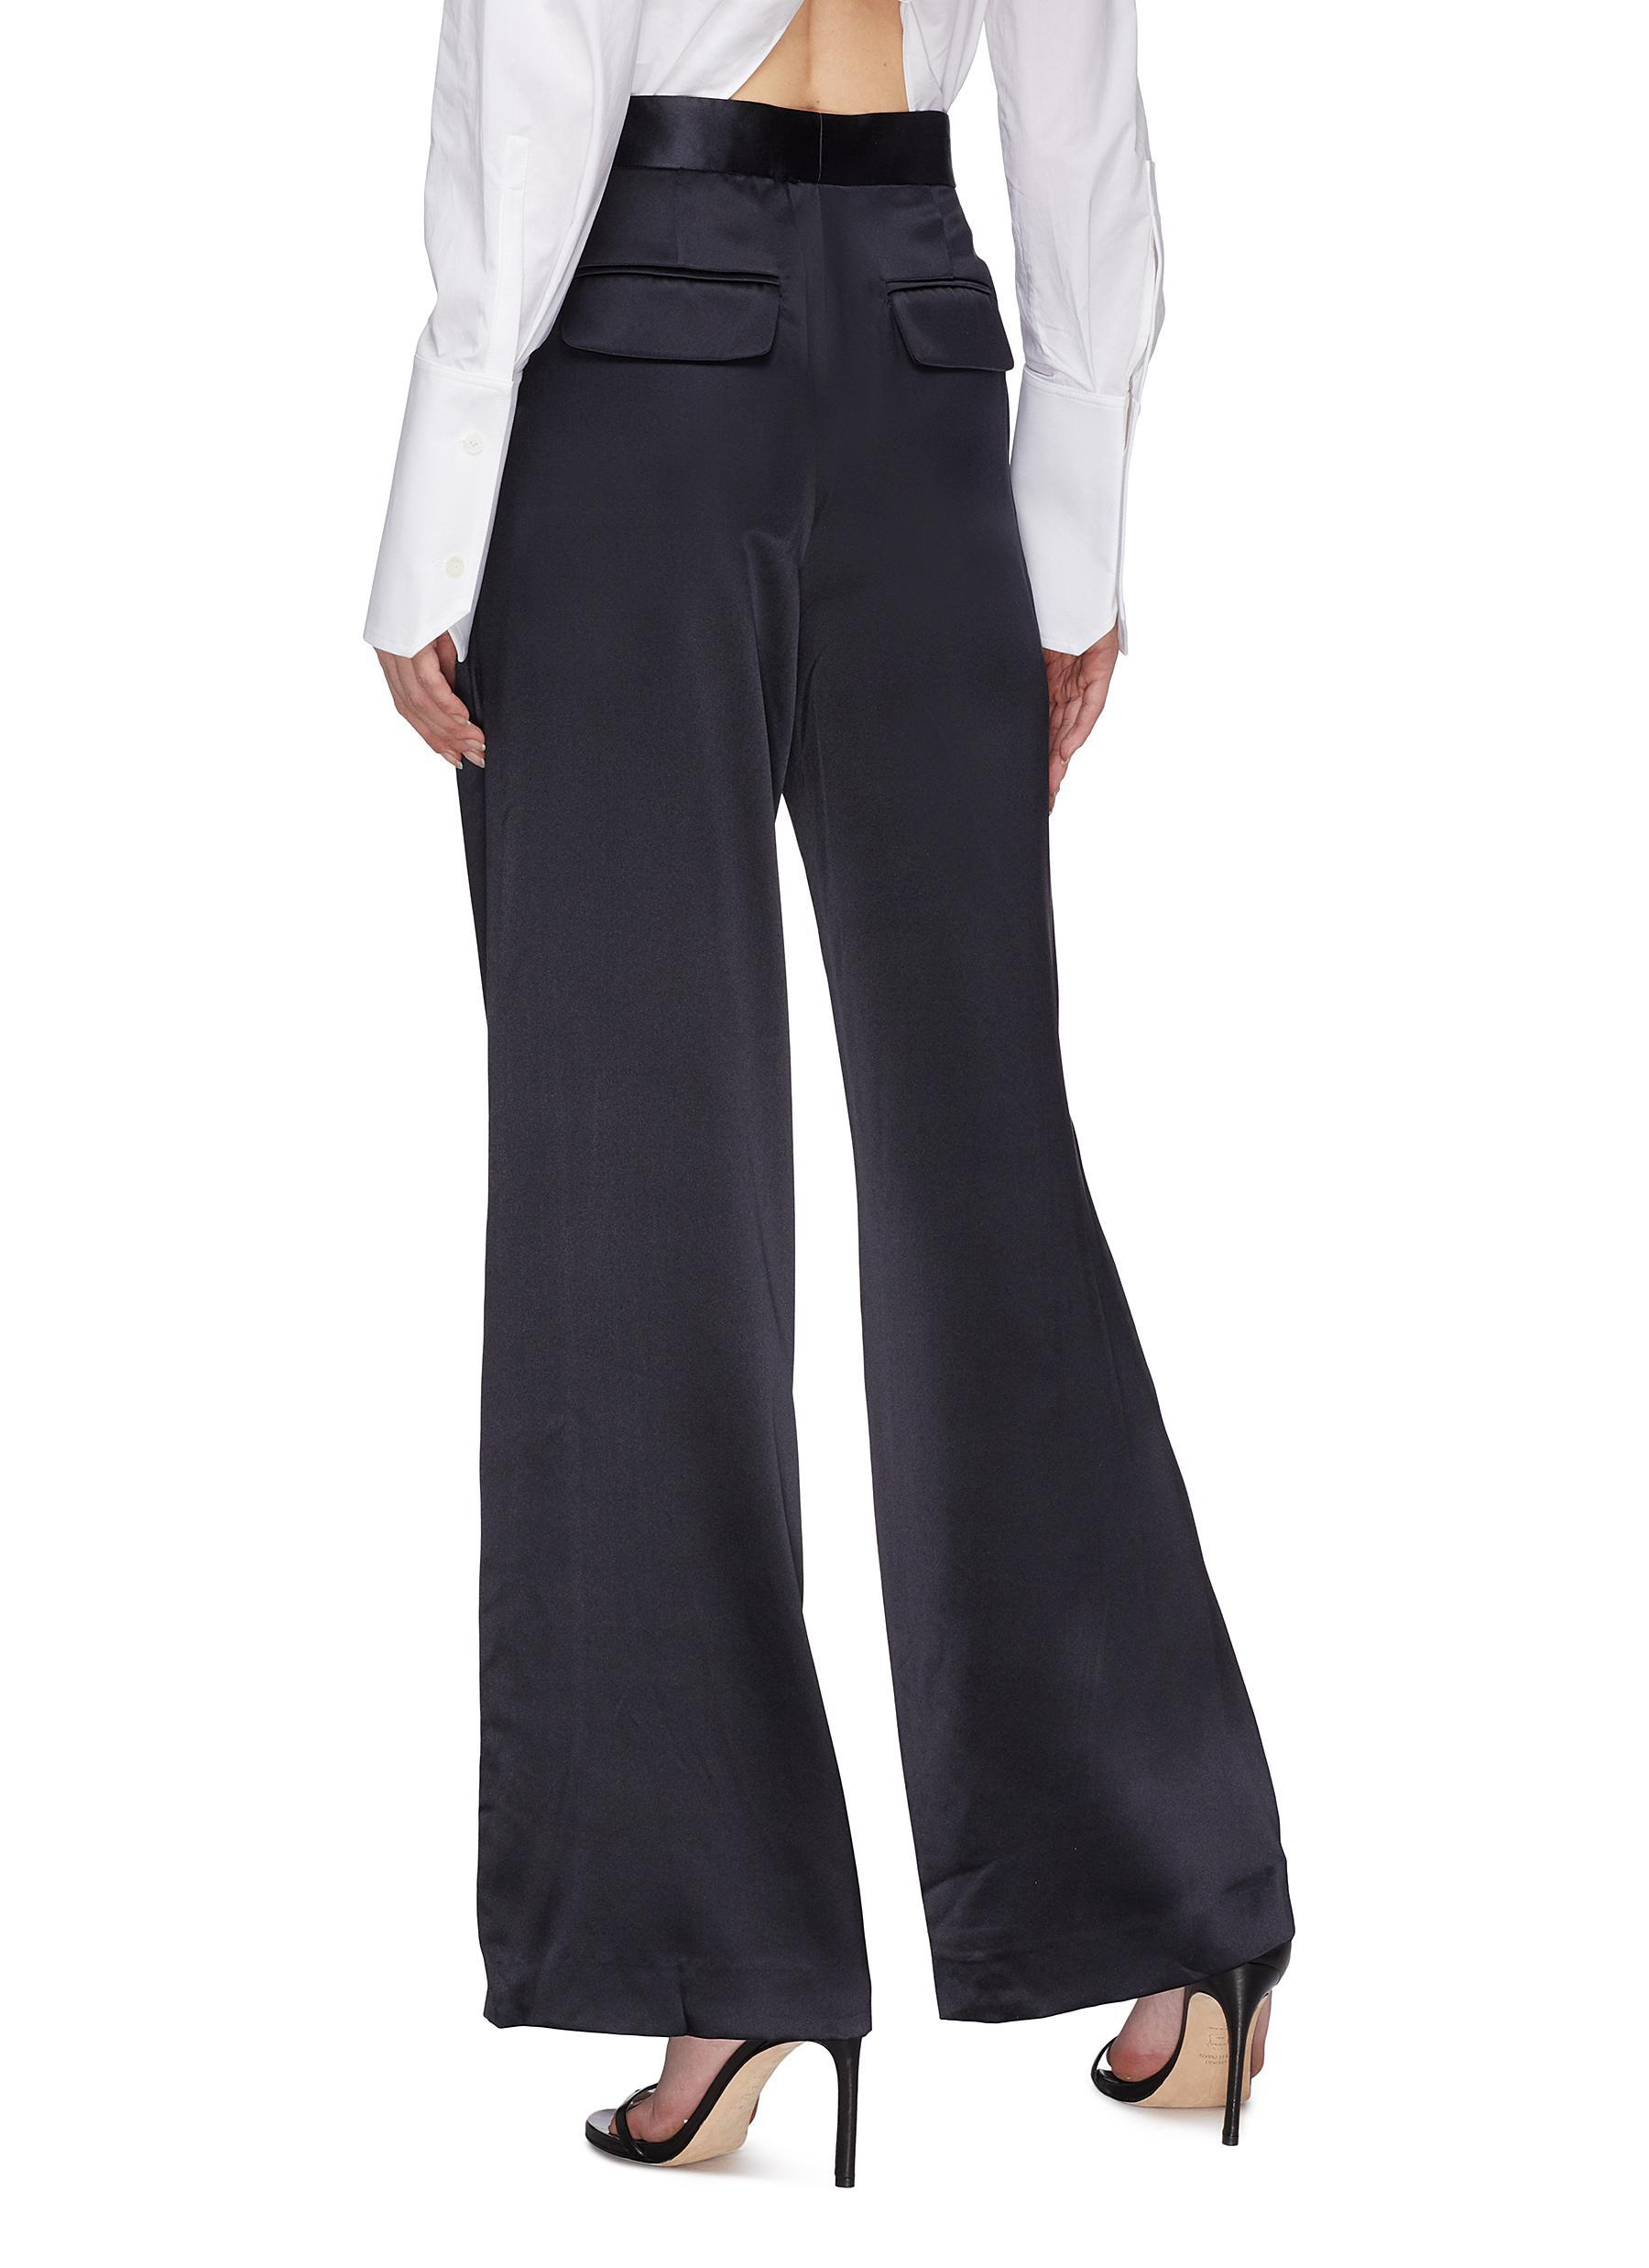 377af38689 Dion Lee Blue Foldover Pocket Mulberry Silk Satin Wide Leg Pants